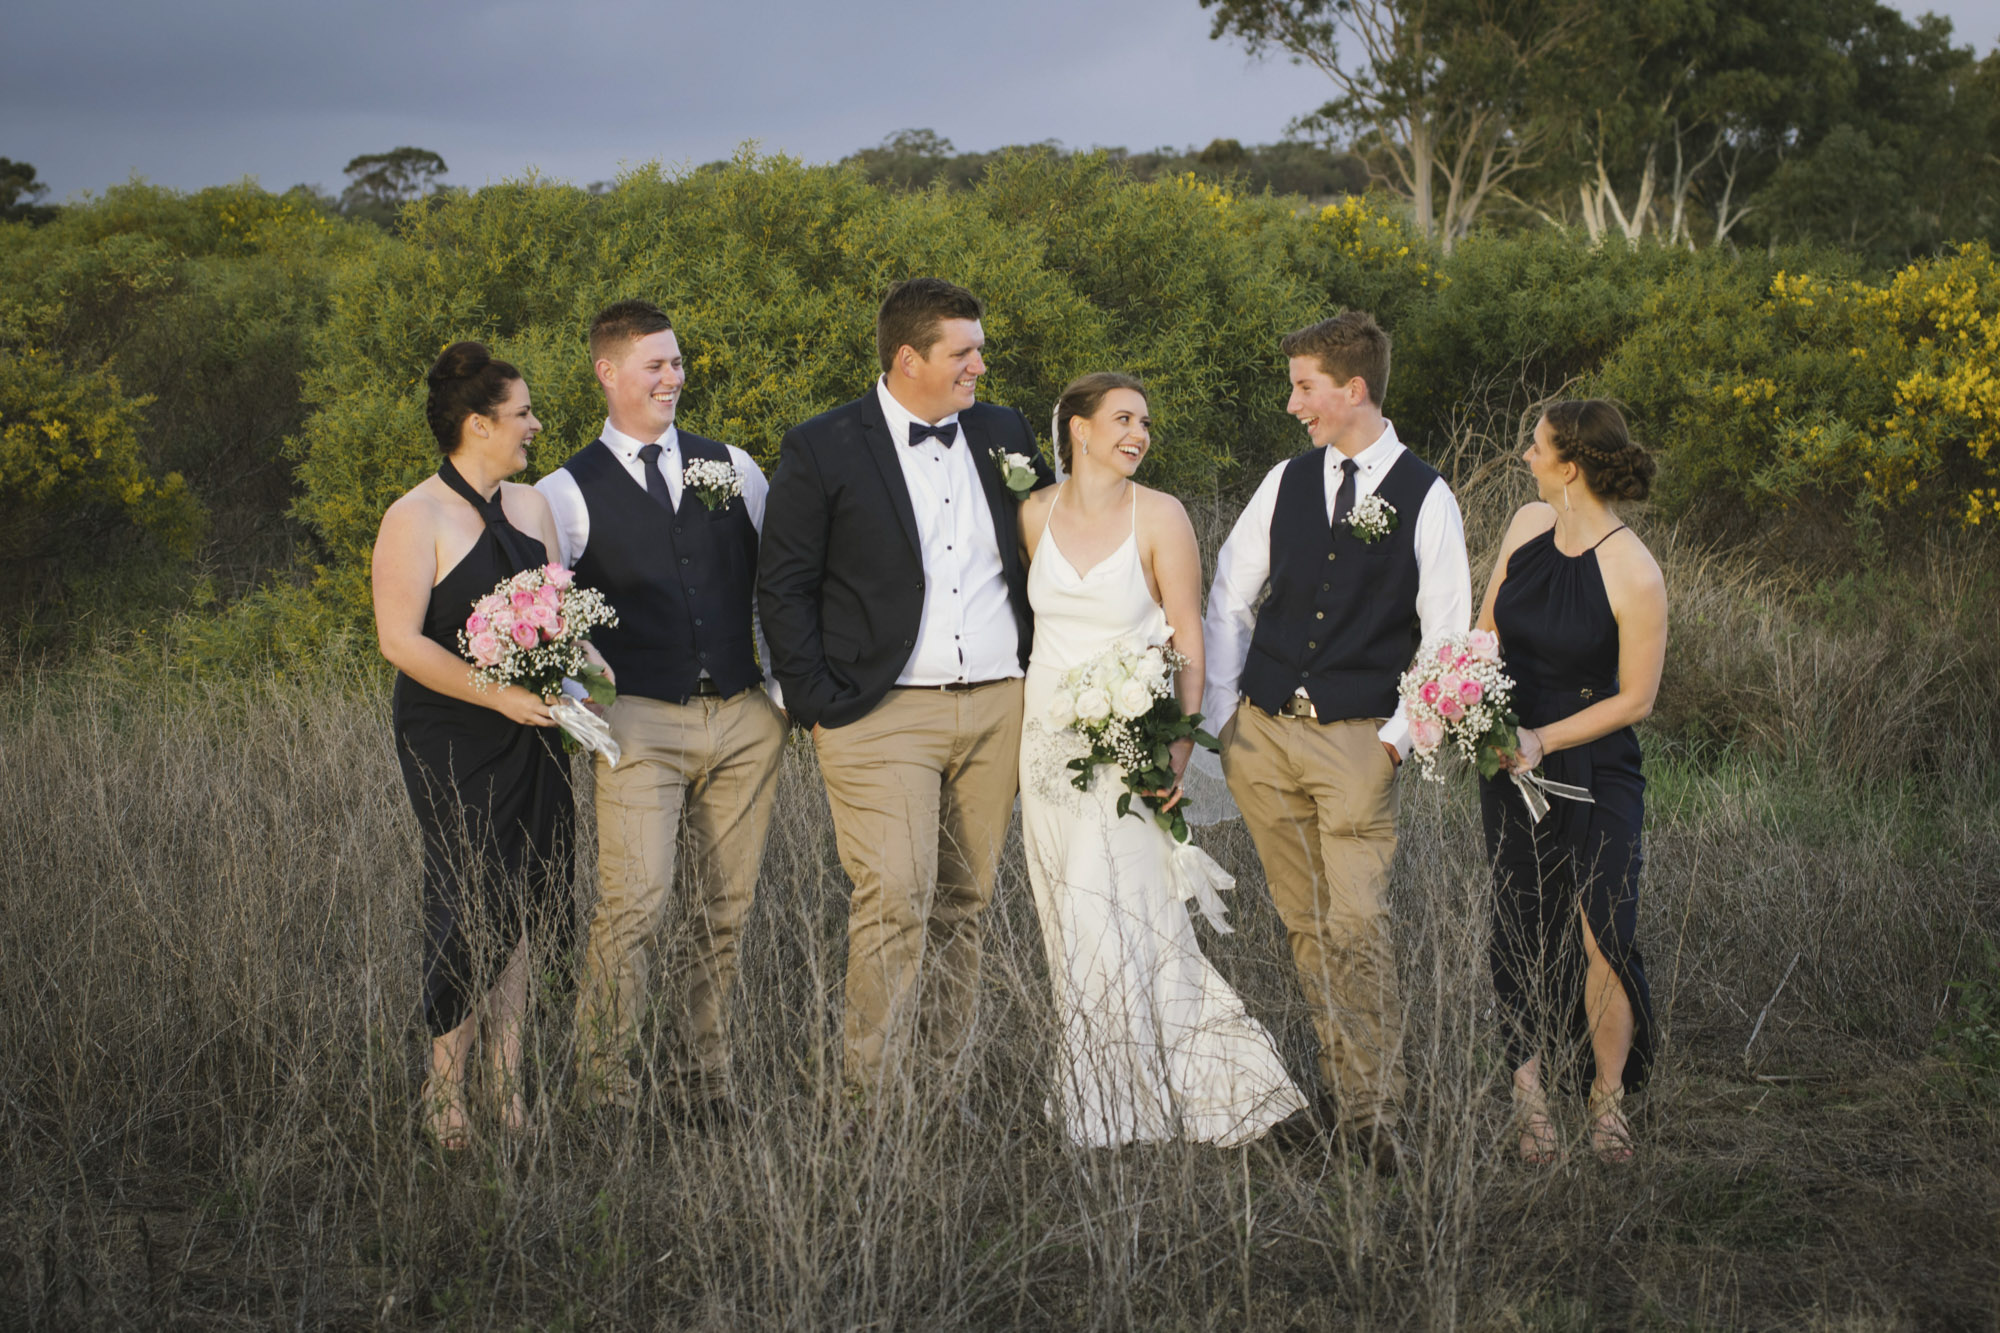 Angie-Roe-Photography-Wedding-Perth-Northam-Wheatbelt-Country-Rural (161).jpg